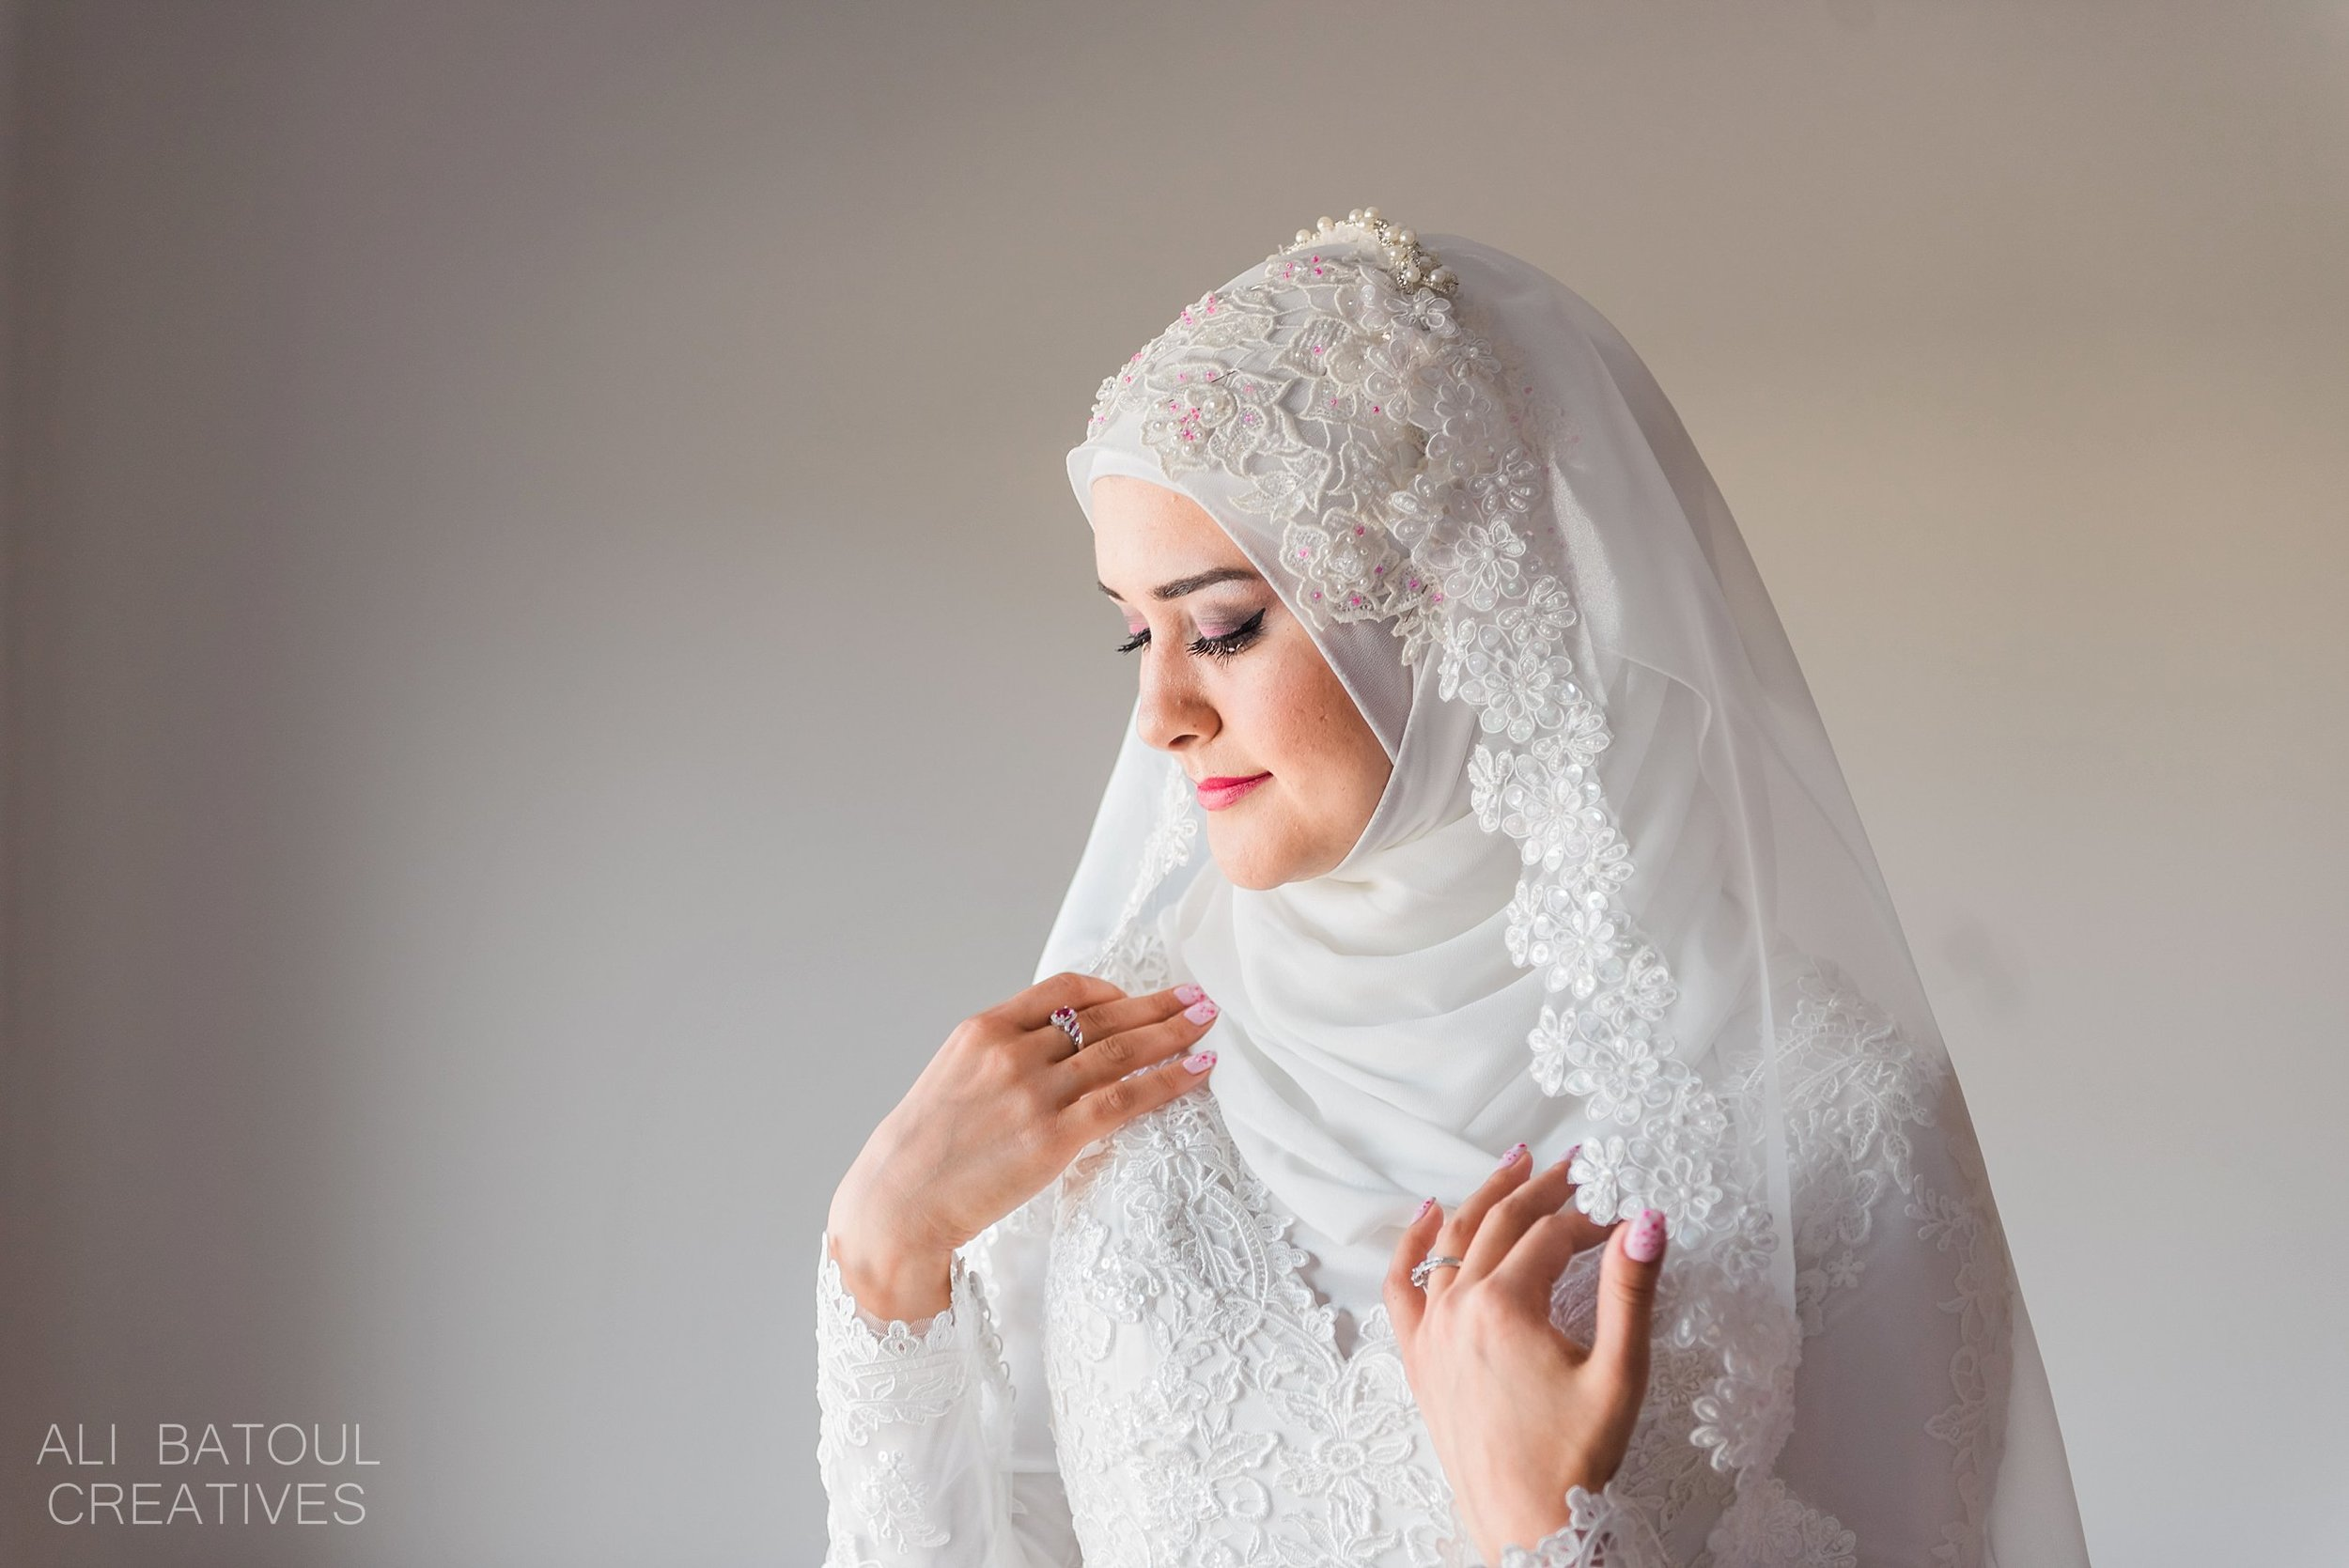 Hanan + Said - Ali Batoul Creatives Fine Art Wedding Photography_0266.jpg